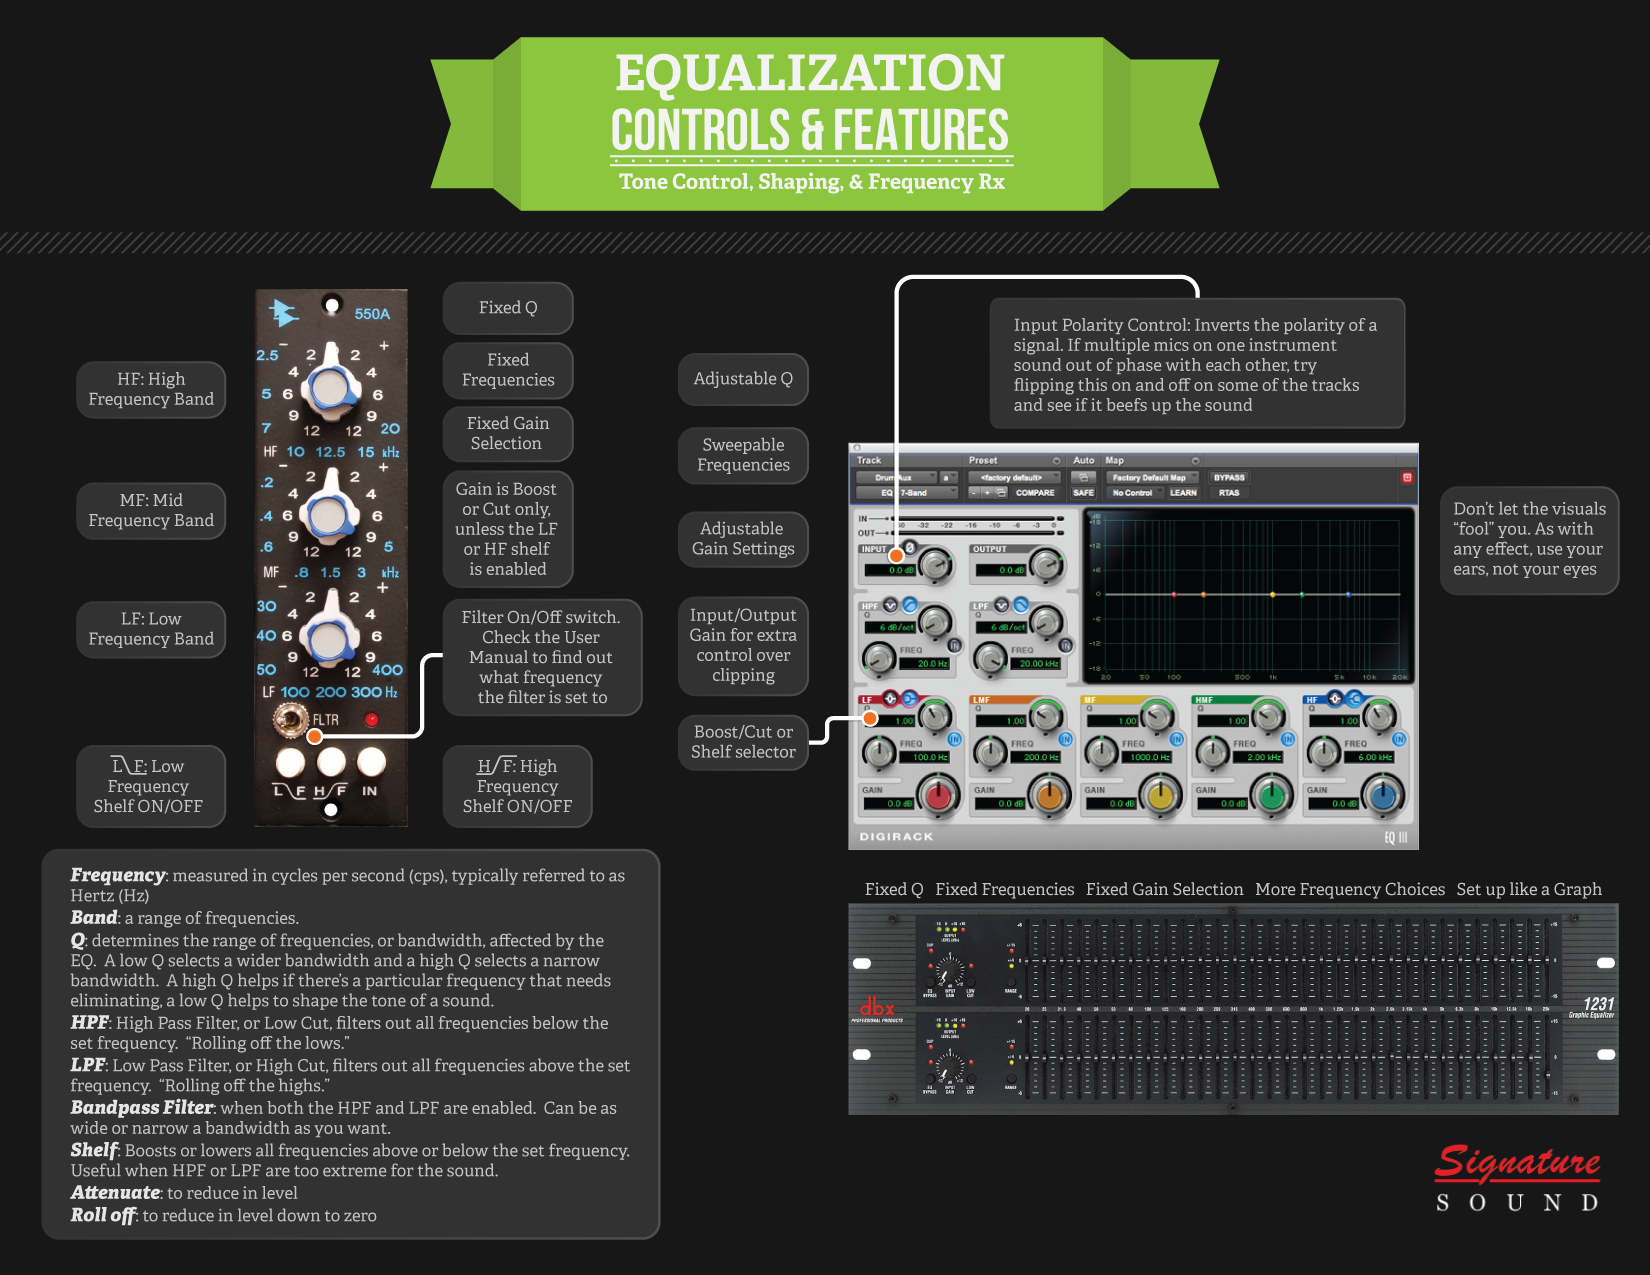 Audio mixing with equalization